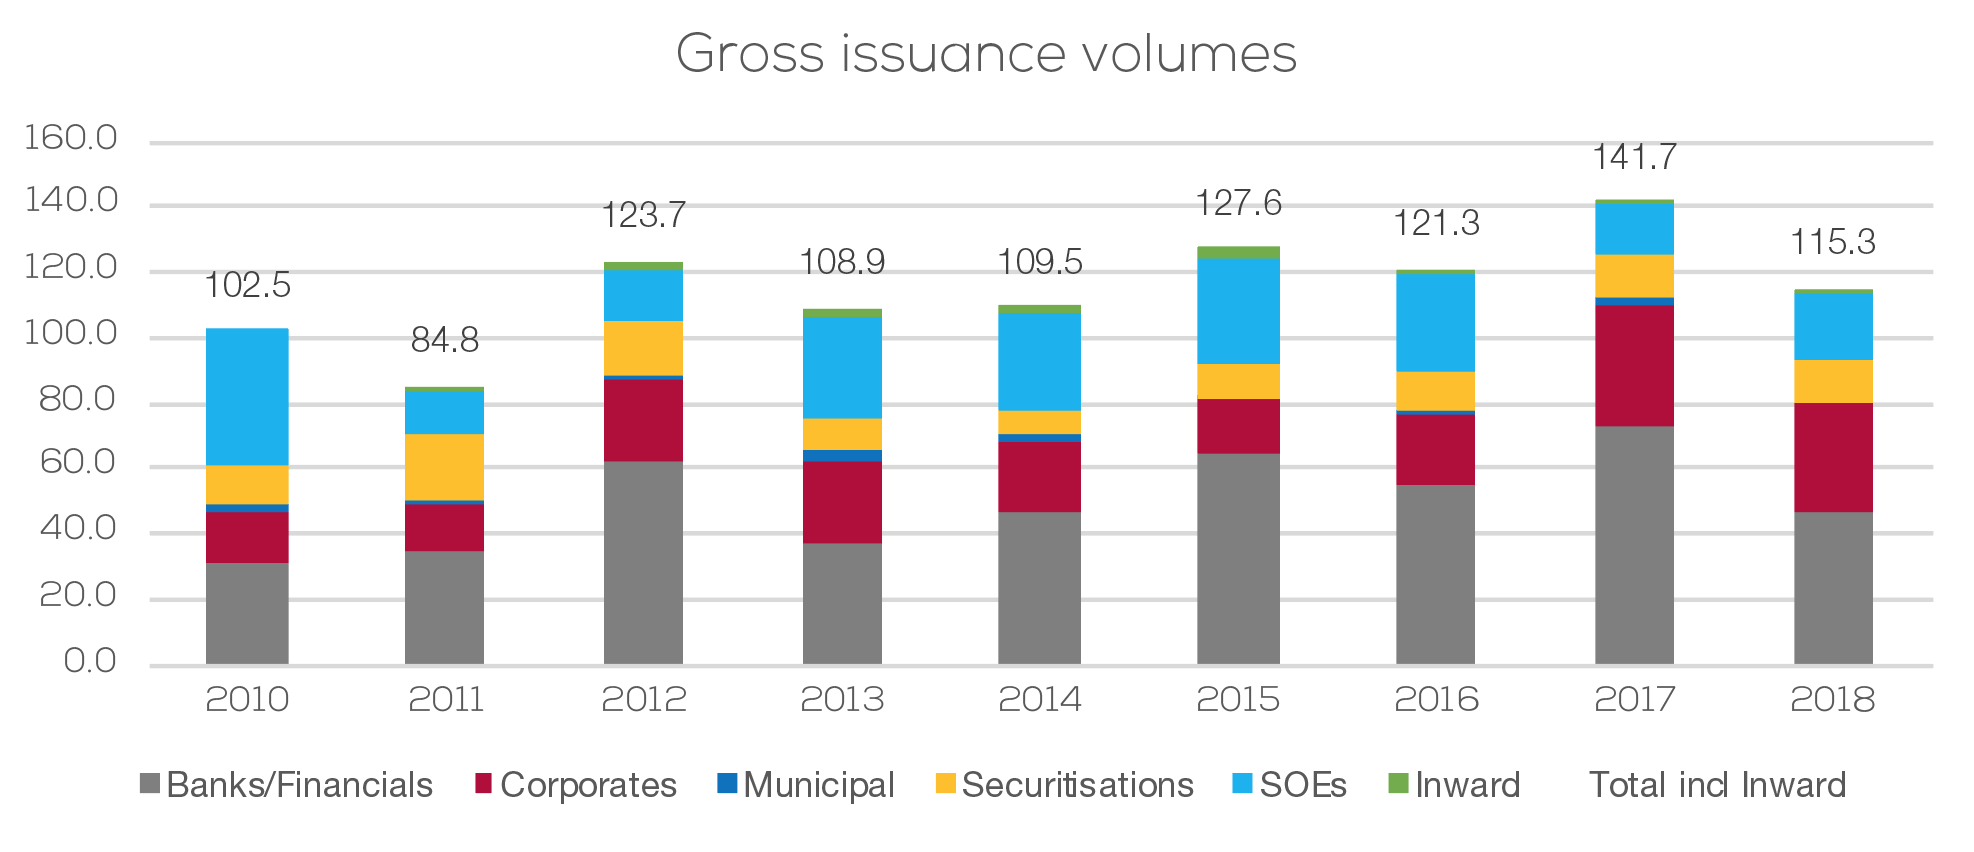 Gross issuance volumes